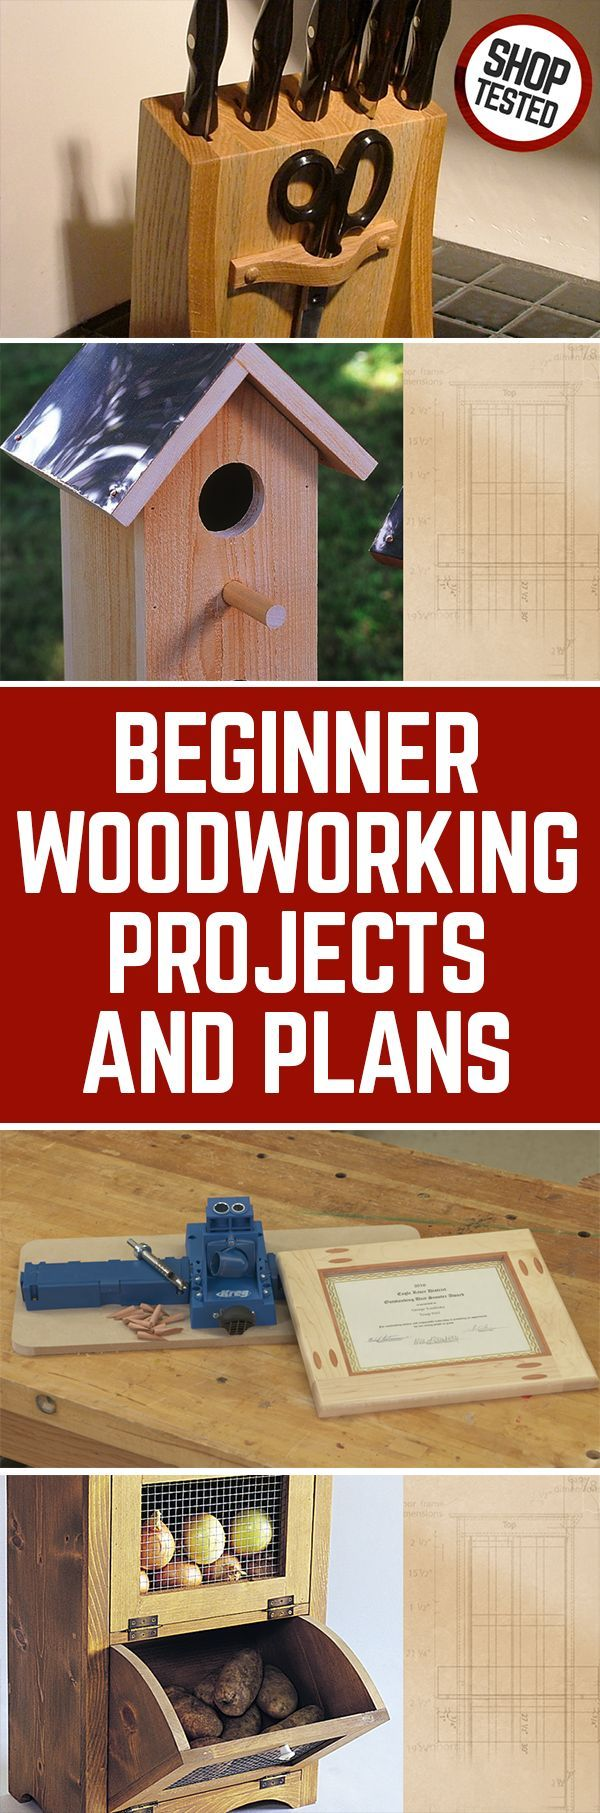 Beginner Woodworking Projects 606 best Woodworking Projects